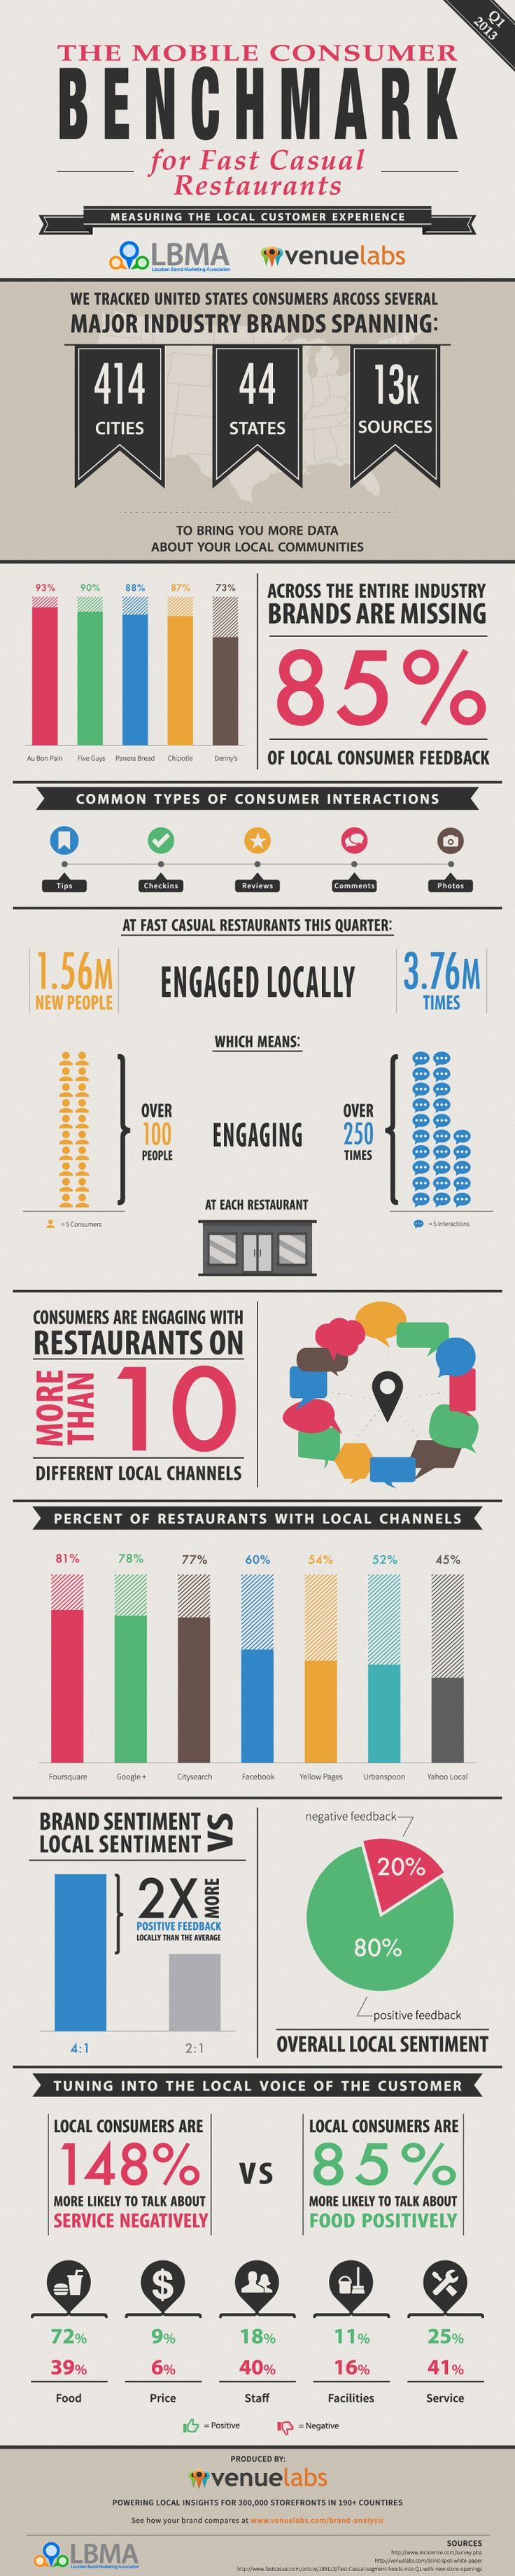 Local Mobile Marketing Channels1 7 Most Used Local Mobile Marketing Channels by Restaurants